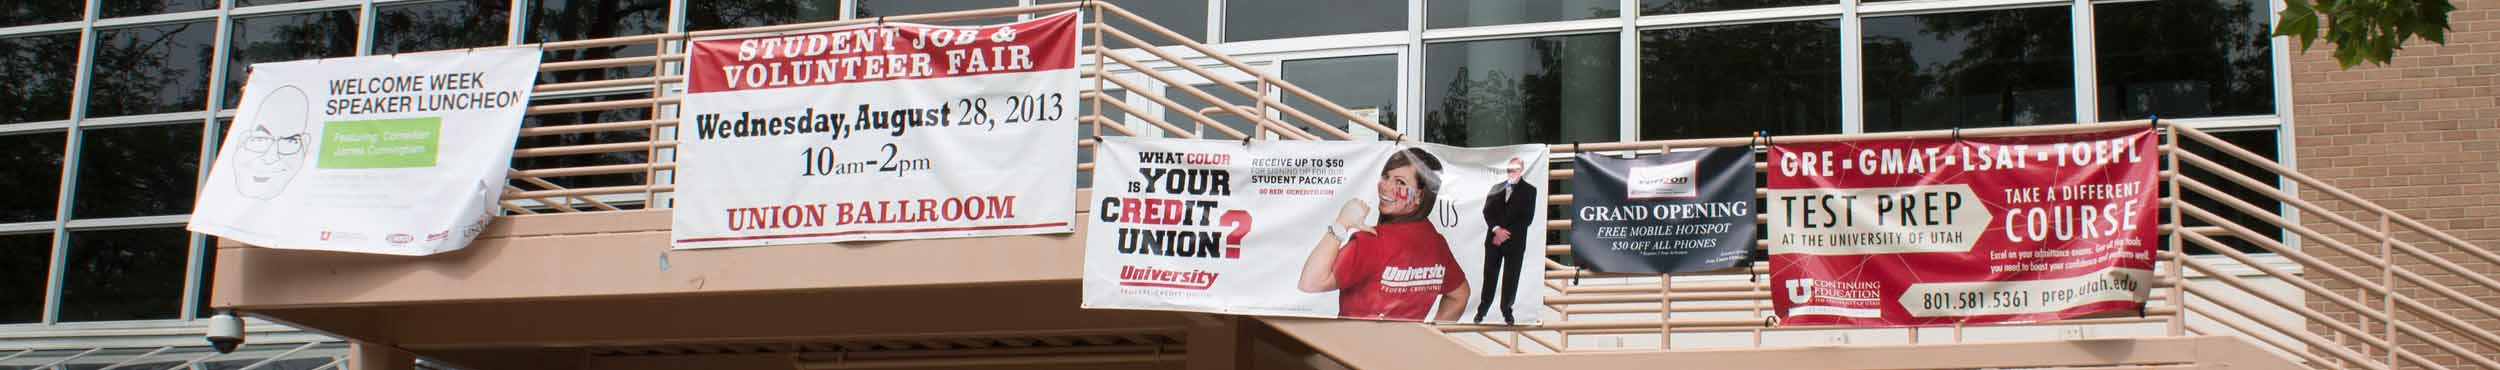 A photo of advertisement banners hanging from the Union staircase.